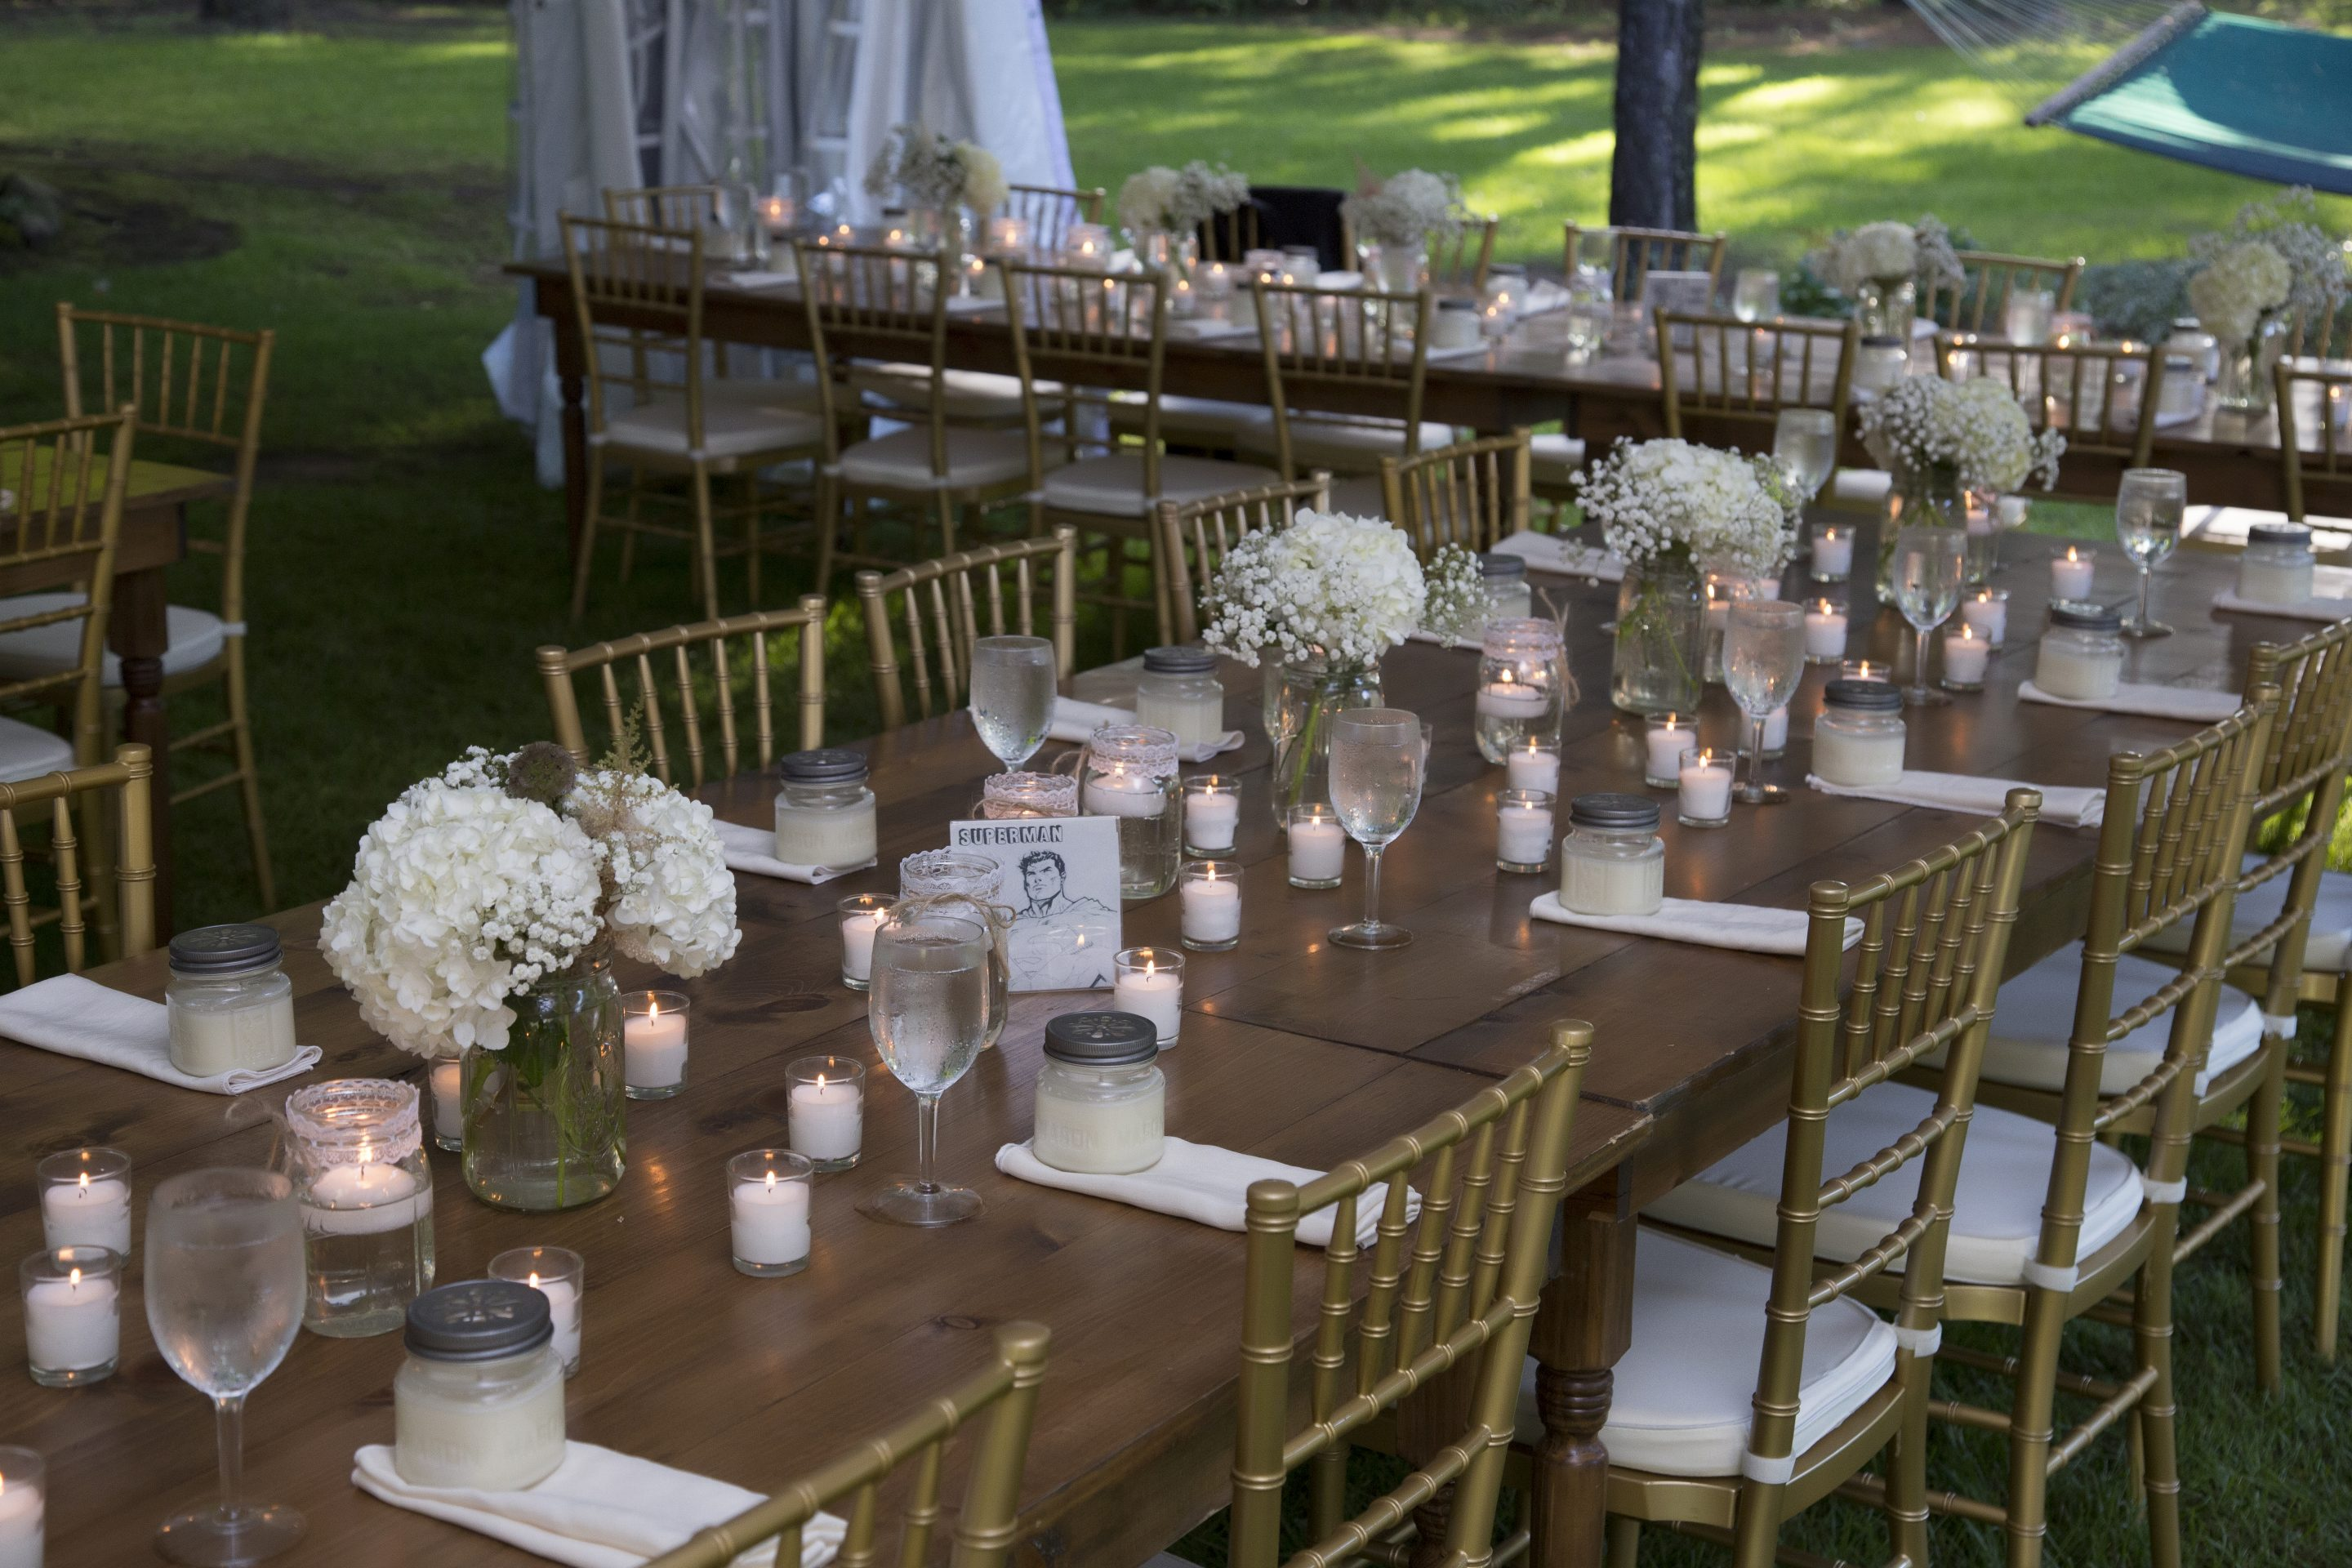 Wedding Chair Rental Products Vintage Decor from Detroit Chiavari